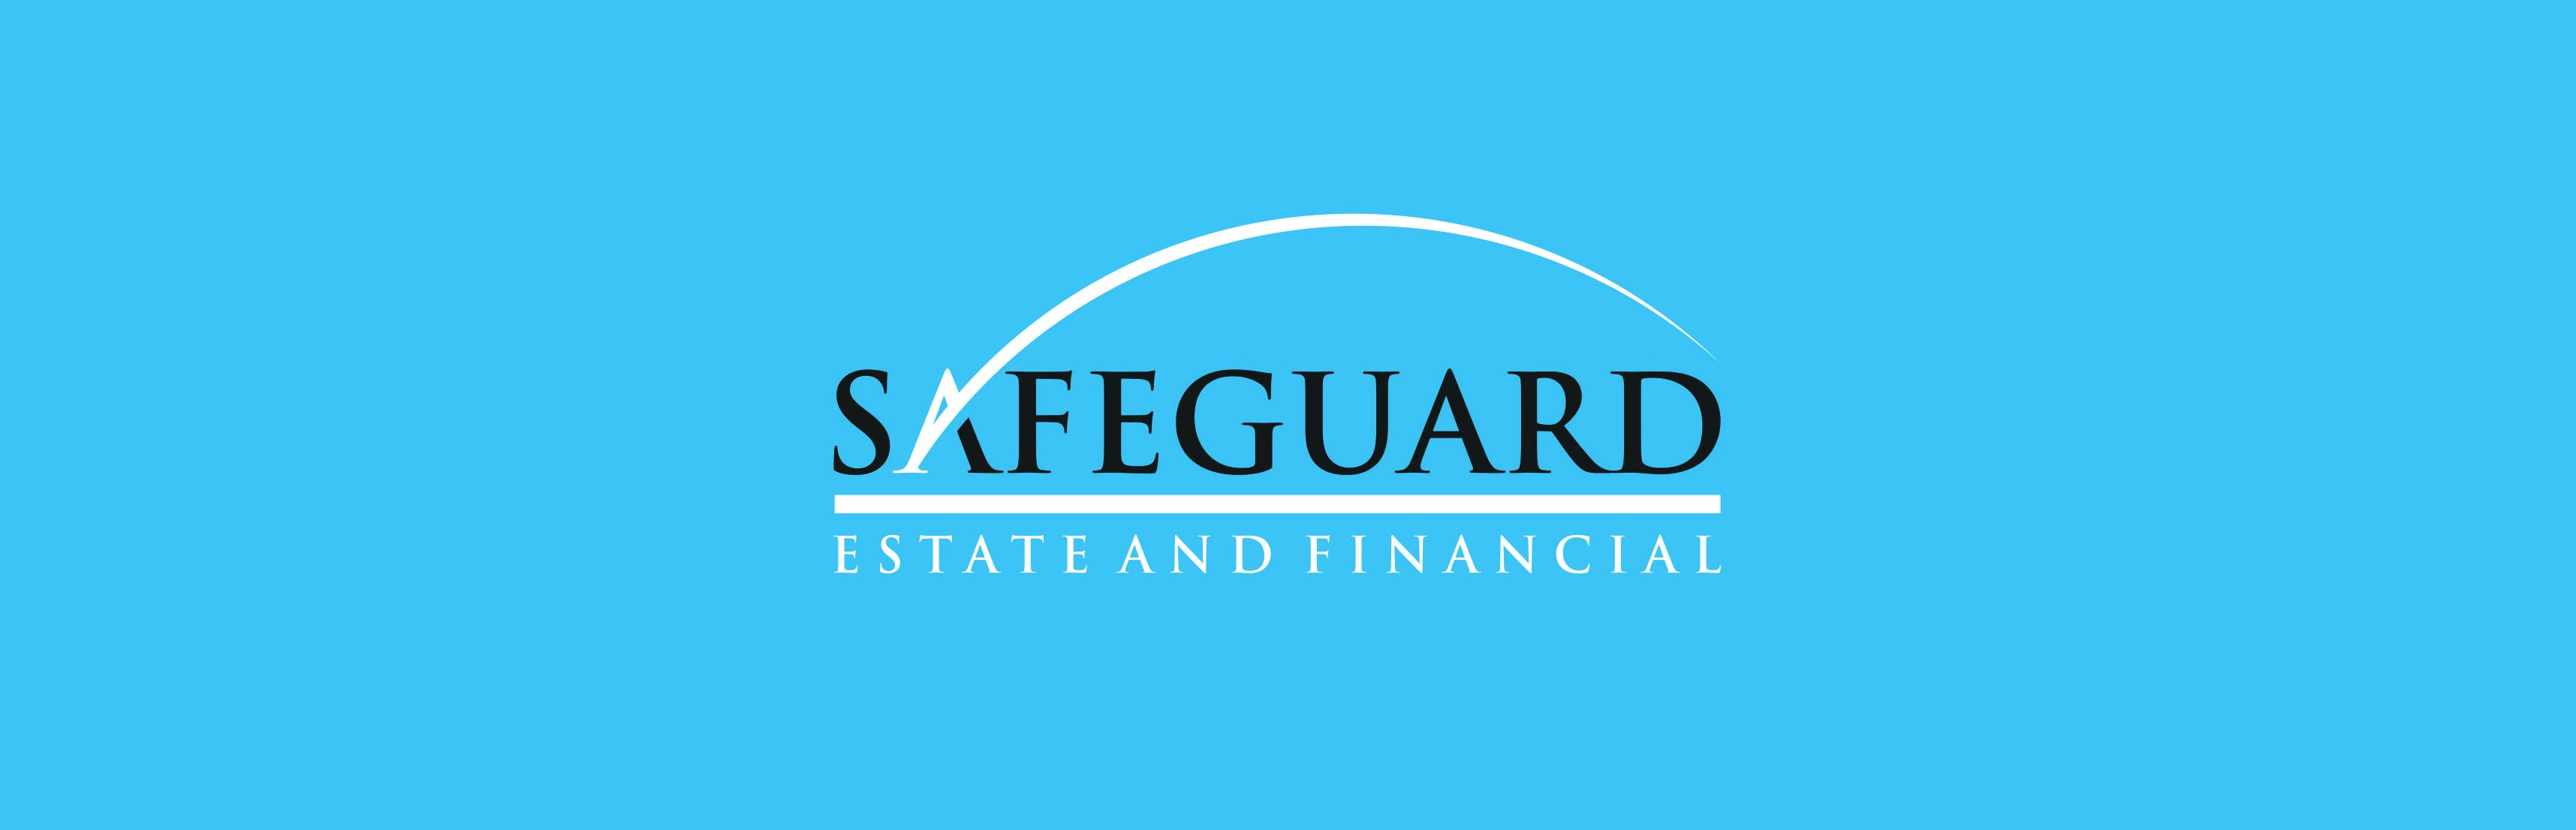 Safeguard Estate and Financial Workshops